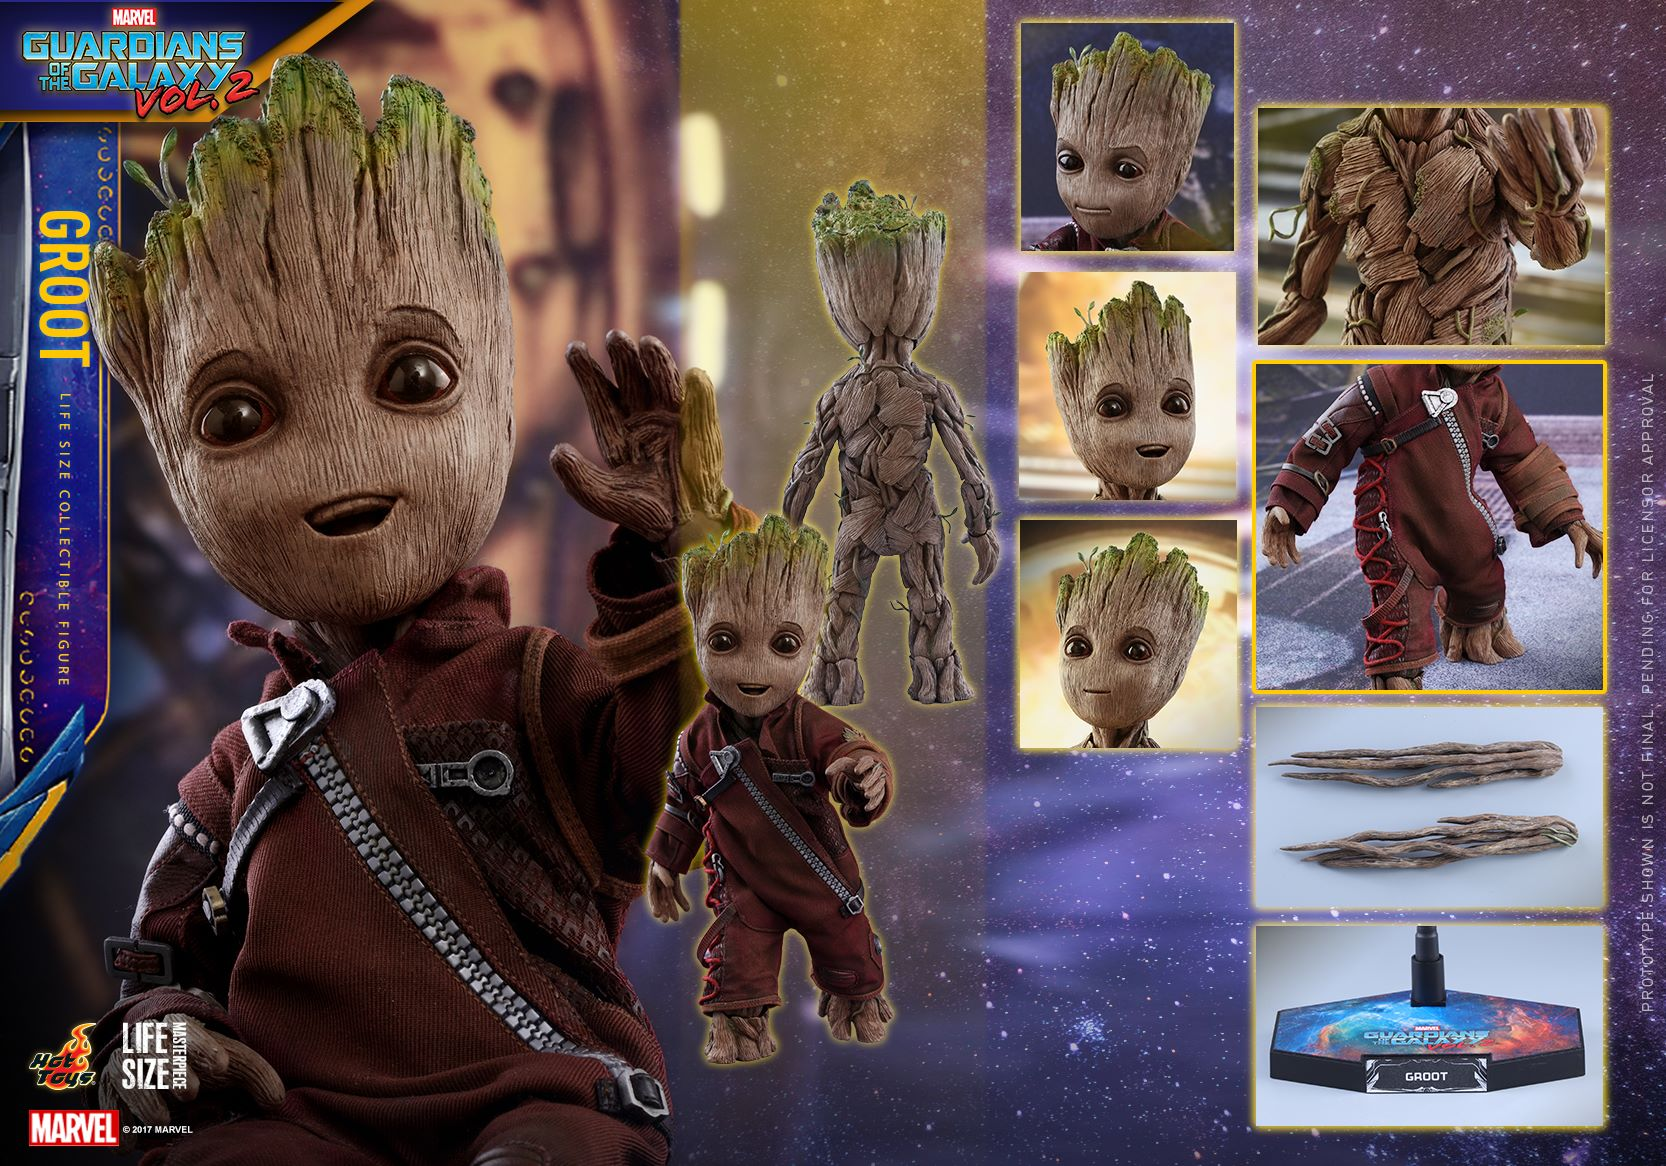 Toys For Life : Guardians of the galaxy vol baby groot life size